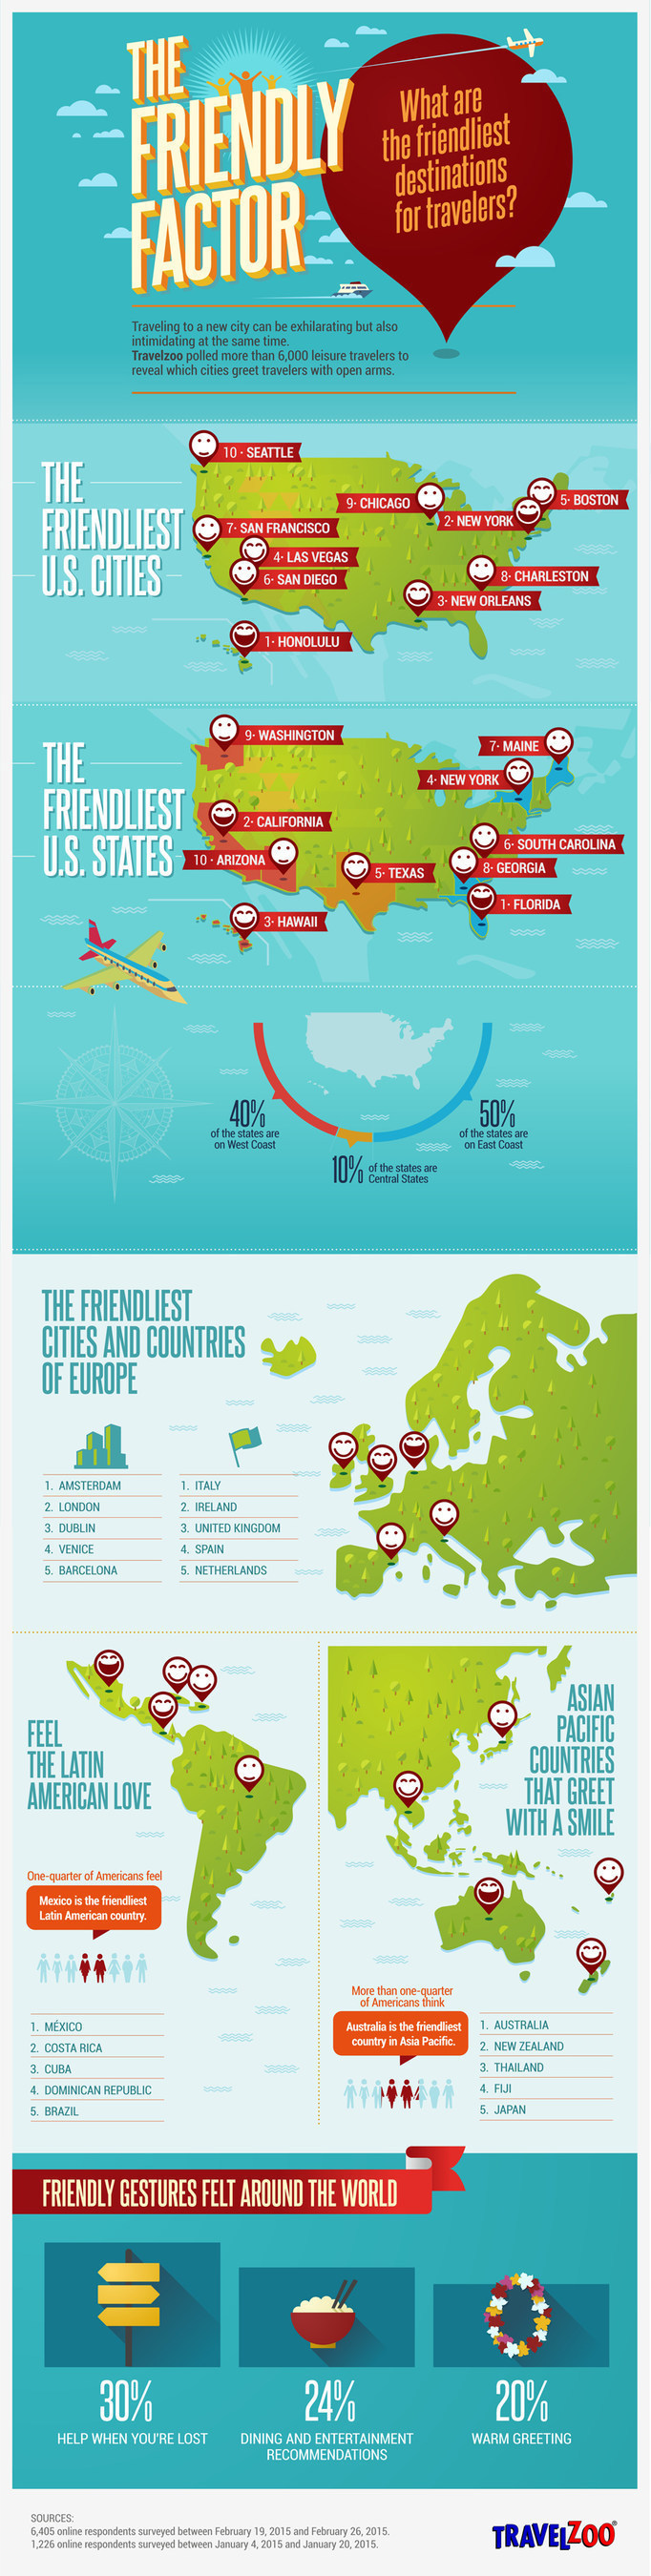 The Friendly Factor: Travelzoo Poll Reveals the Friendliest Destinations for Travelers